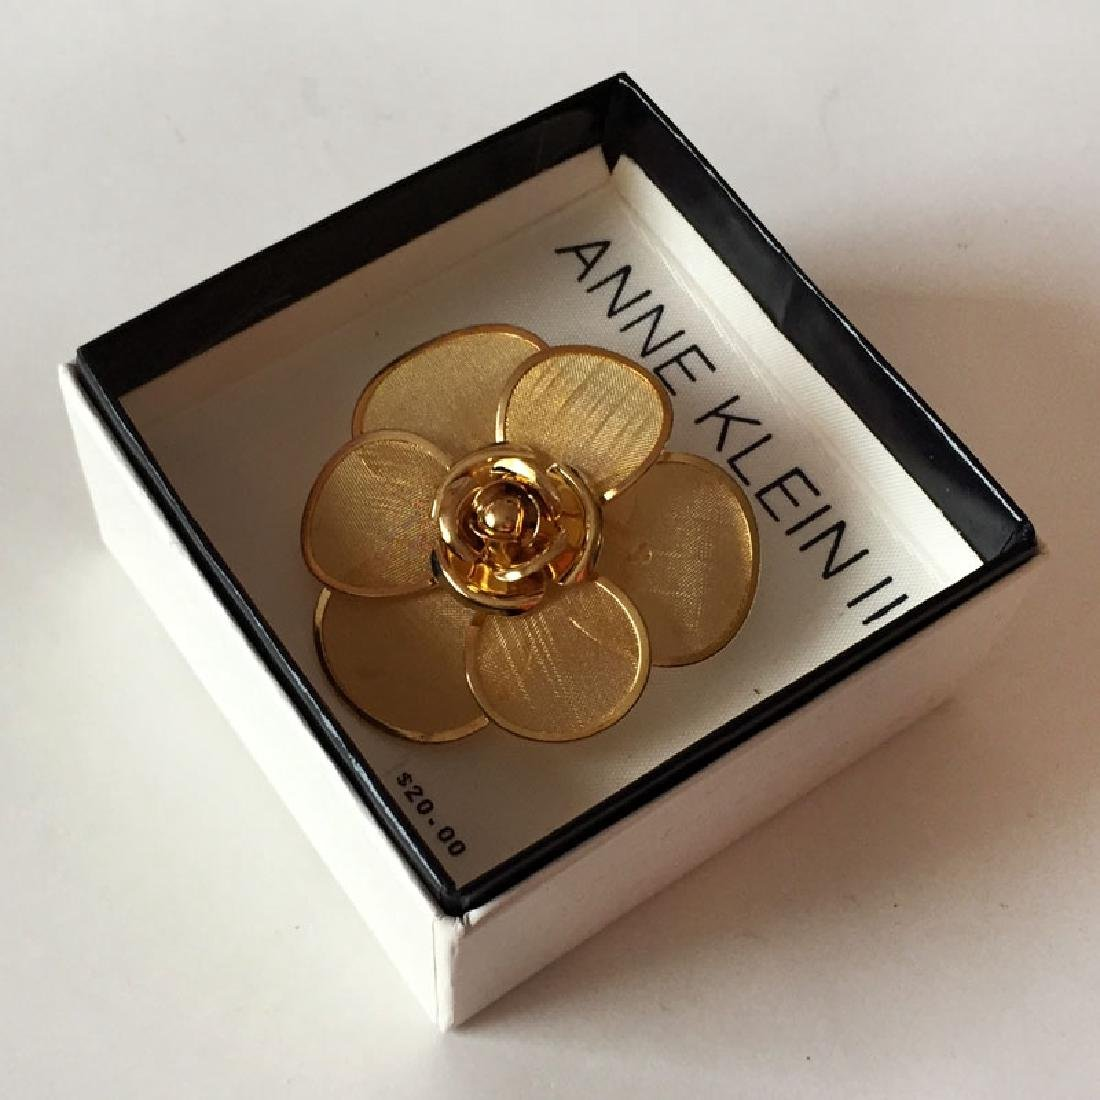 ANNE KLEIN II: Gold plated mesh petals ROSE shaped